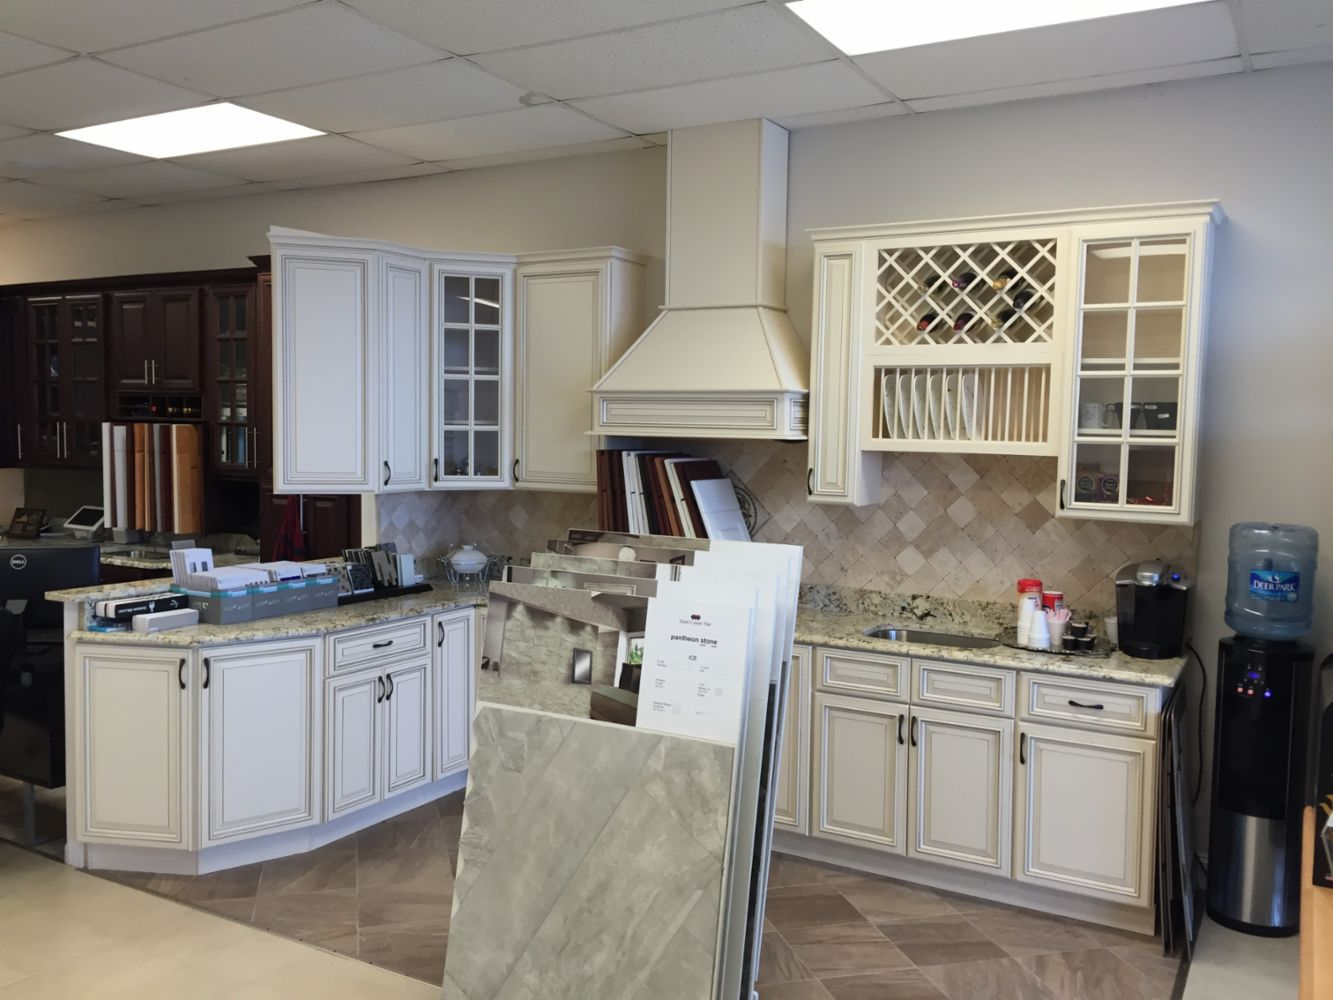 sp modern kitchen and home solutions kitchen remodeling manassas va Modern Kitchen and Home Solutions has been rated with 22 experience points based on Fixr s rating system